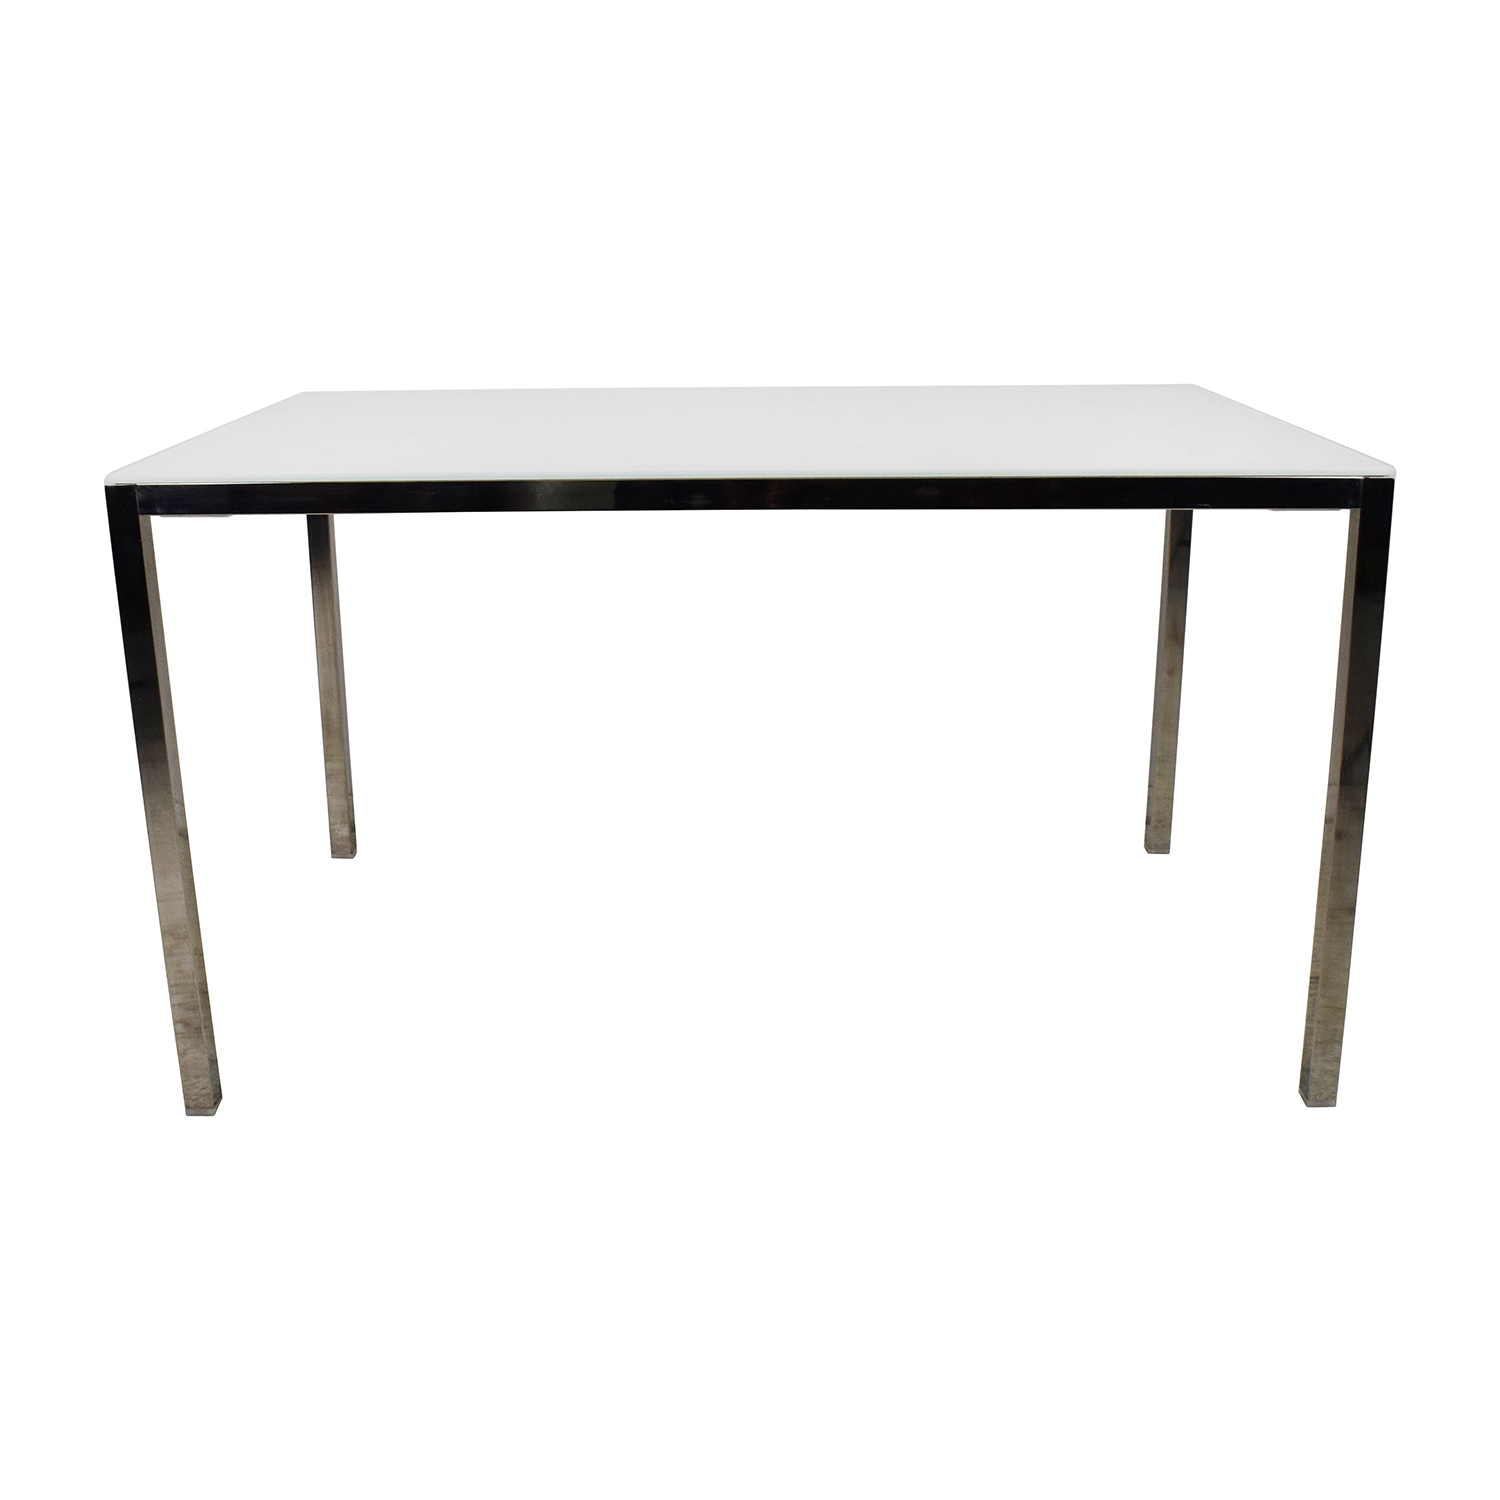 IKEA IKEA Torsby Large Glass Top Dining Table on sale